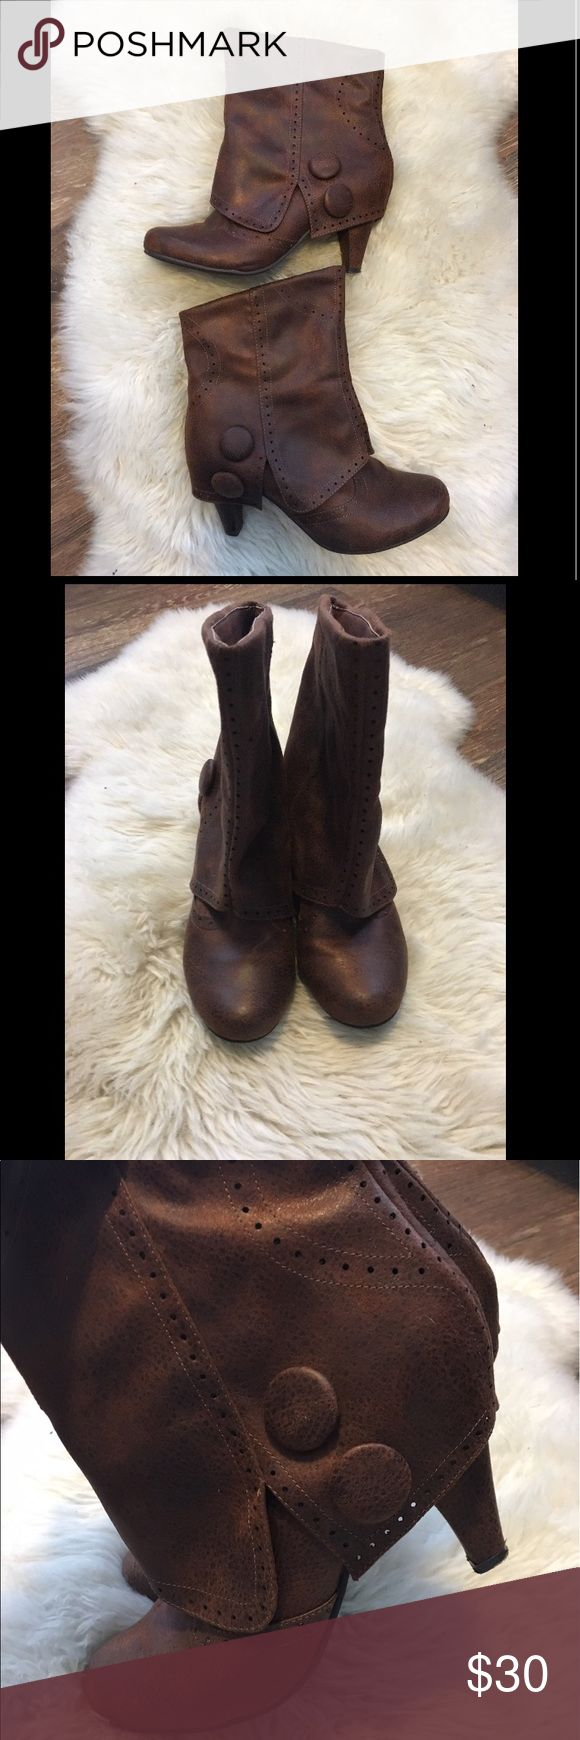 Not Rated Cowgirl Chukka Boots! Like new, brown chukka boots by Not Rated! Faux suede, heeled boot with outside button details. These are seriously comfortable and pair perfectly with skinny jeans! 9.5 but I'm a 9 and they fit very well. Thanks for looking! Not Rated Shoes Heeled Boots